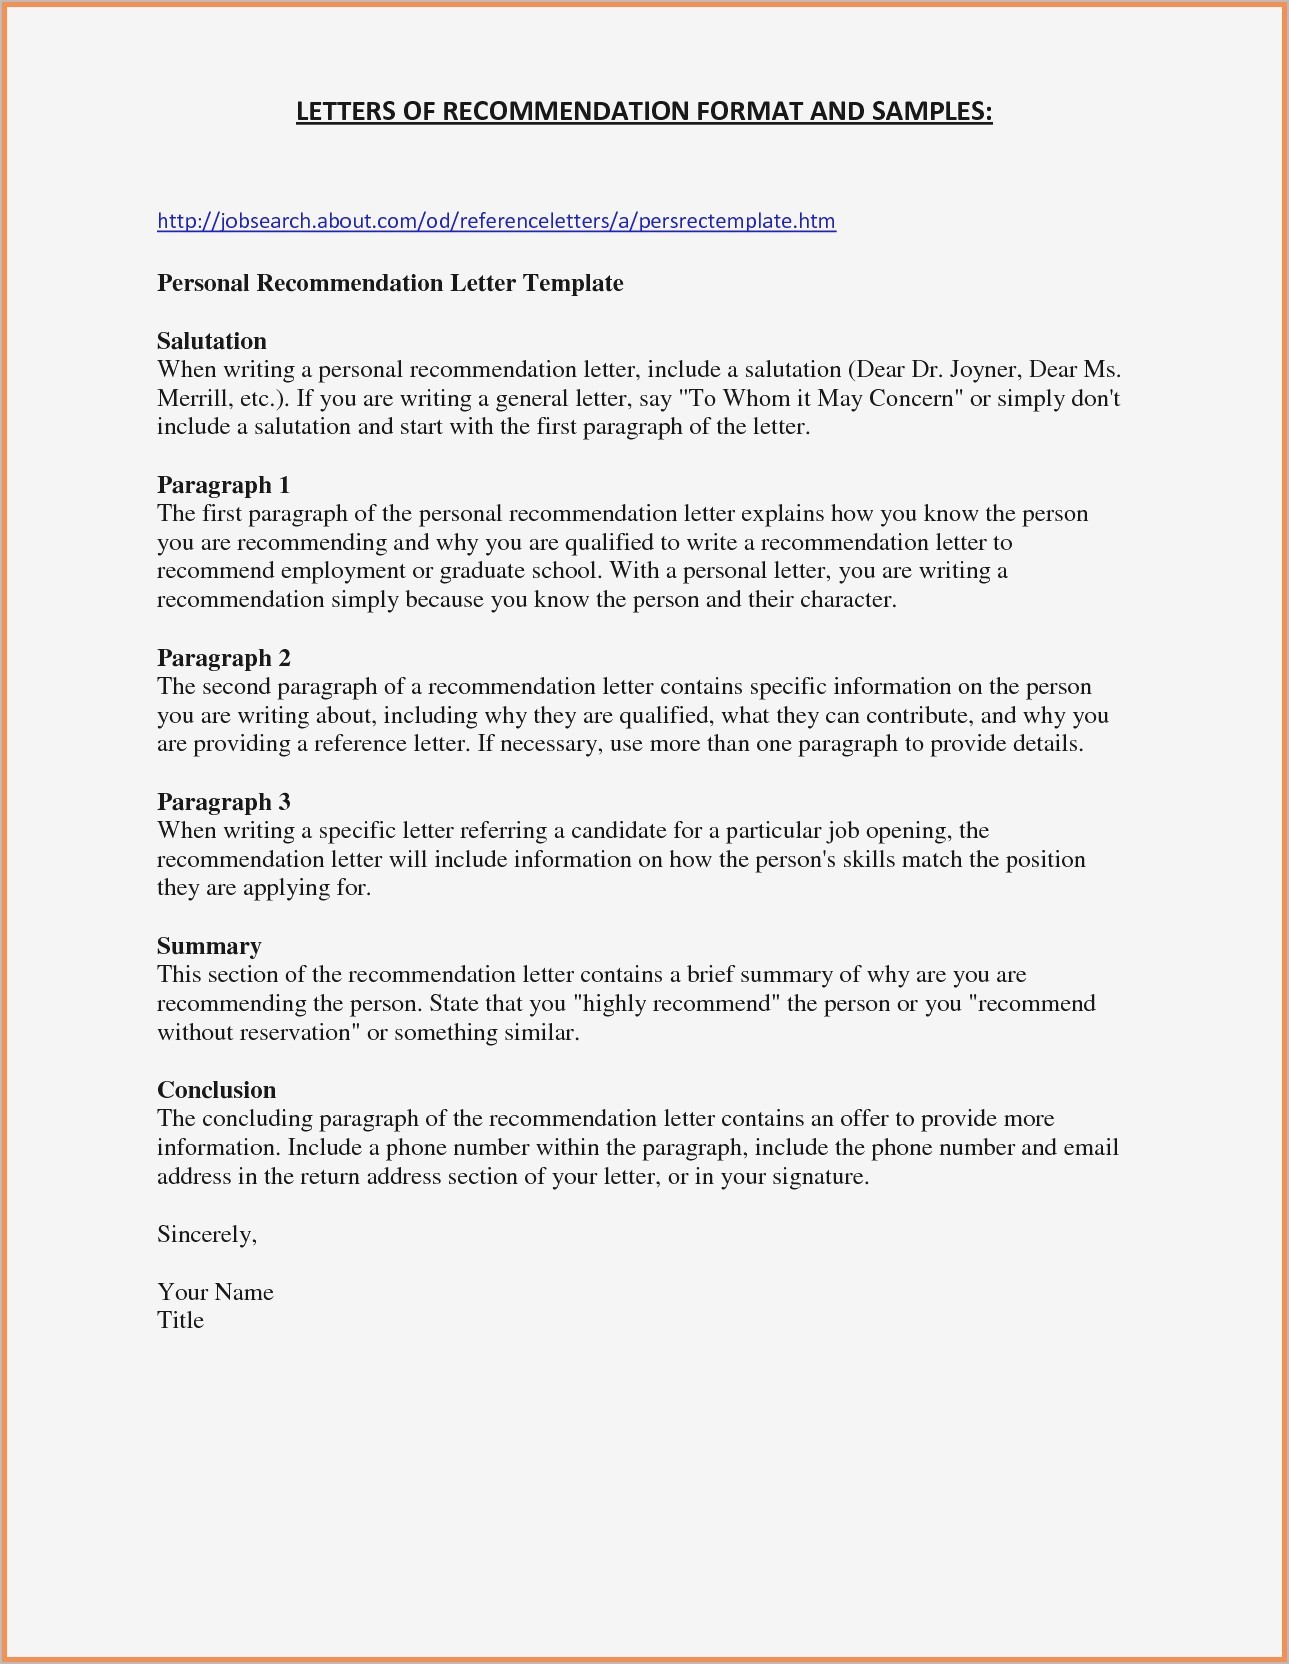 General Letter Of Recommendation Template - Job Letter Re Mendation Template Best Free Letter Re Mendation